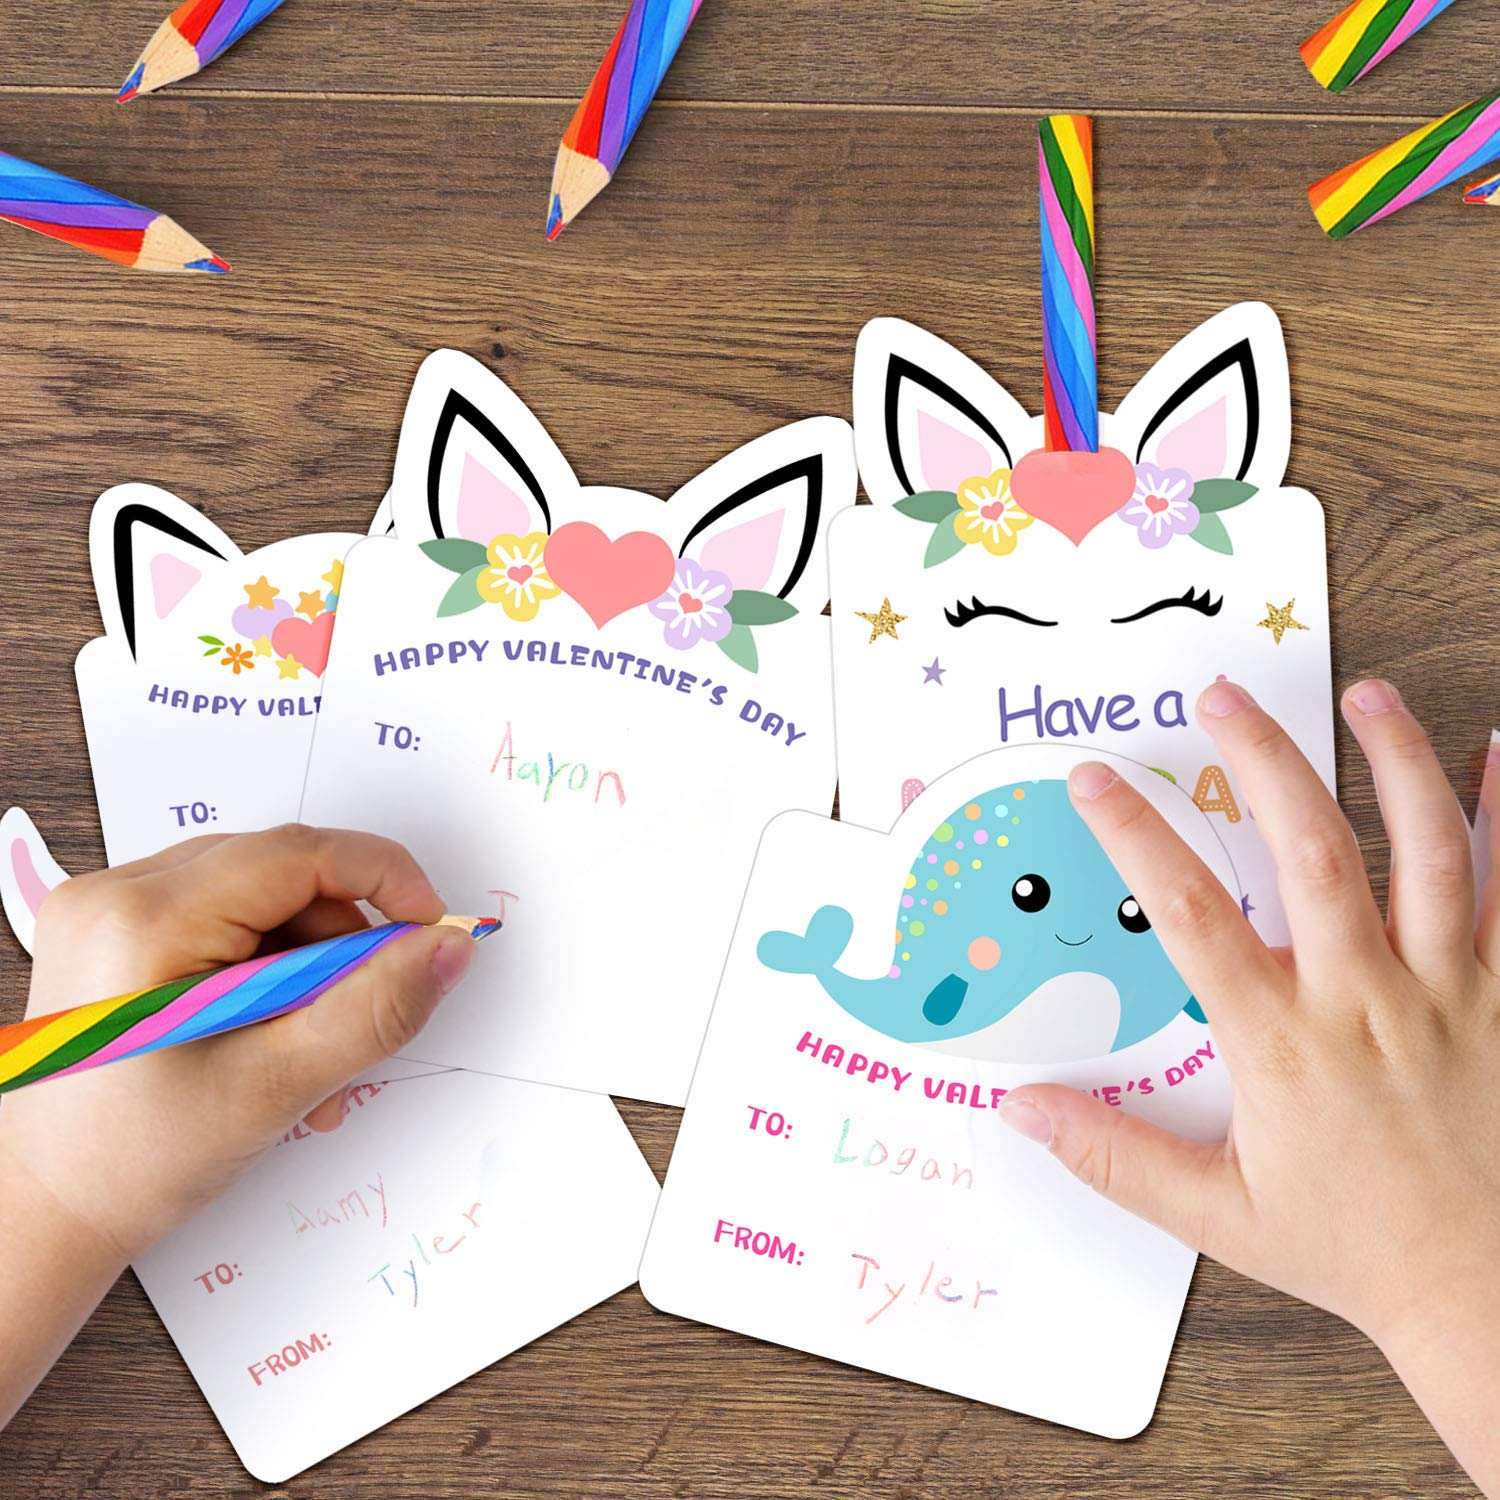 Valentines Day Cards for Kids Class Party Favors Valentine day cards Exchange Bulk for Girls Boys School Classroom Supplies Set of 24 Rainbow Pencils Unicorn Valentines